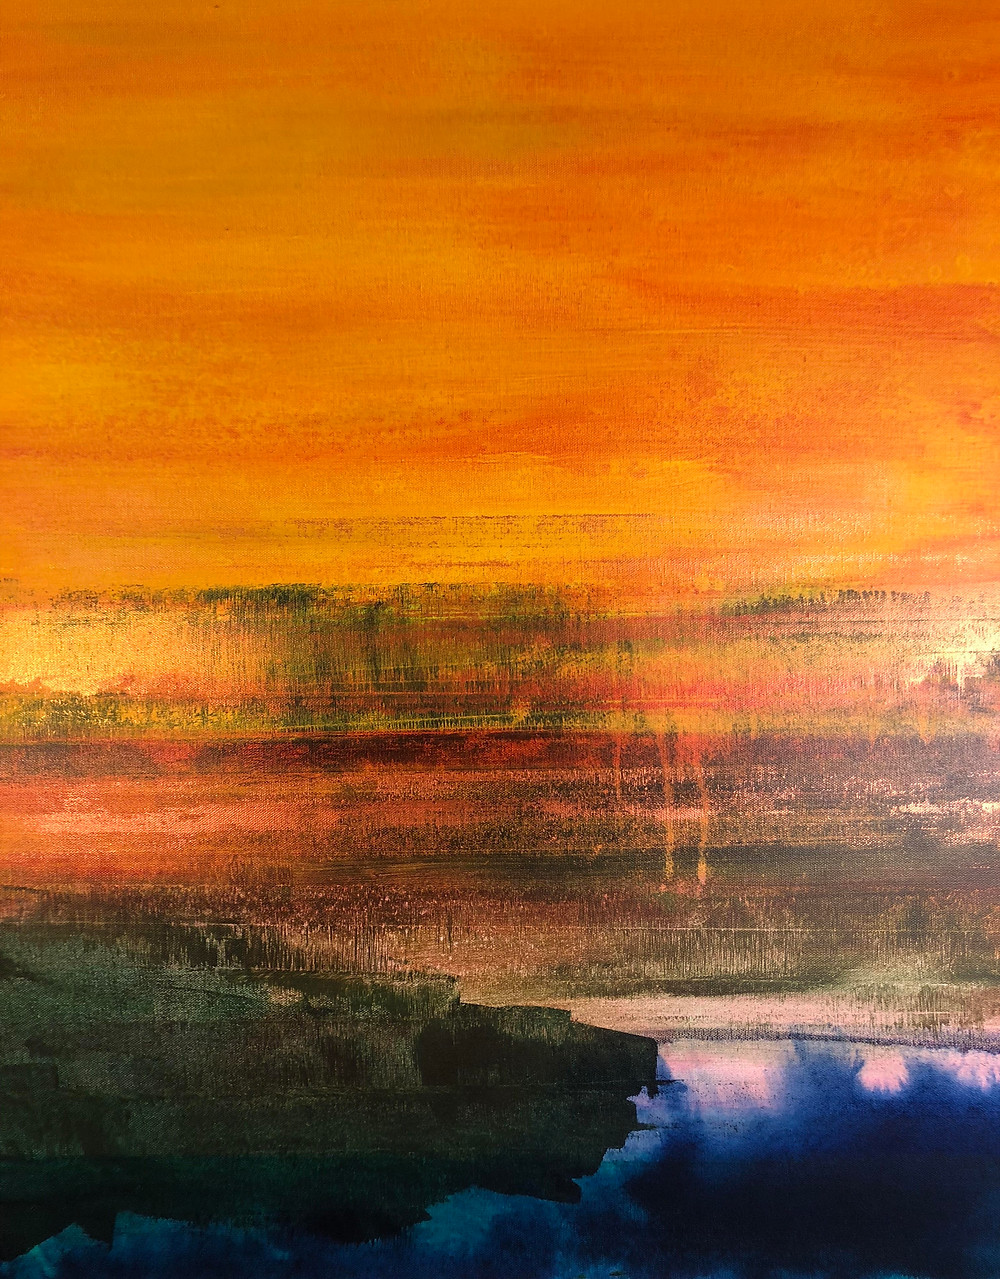 yellow sky sunset, 24 x 30 in. acrylic on canvas